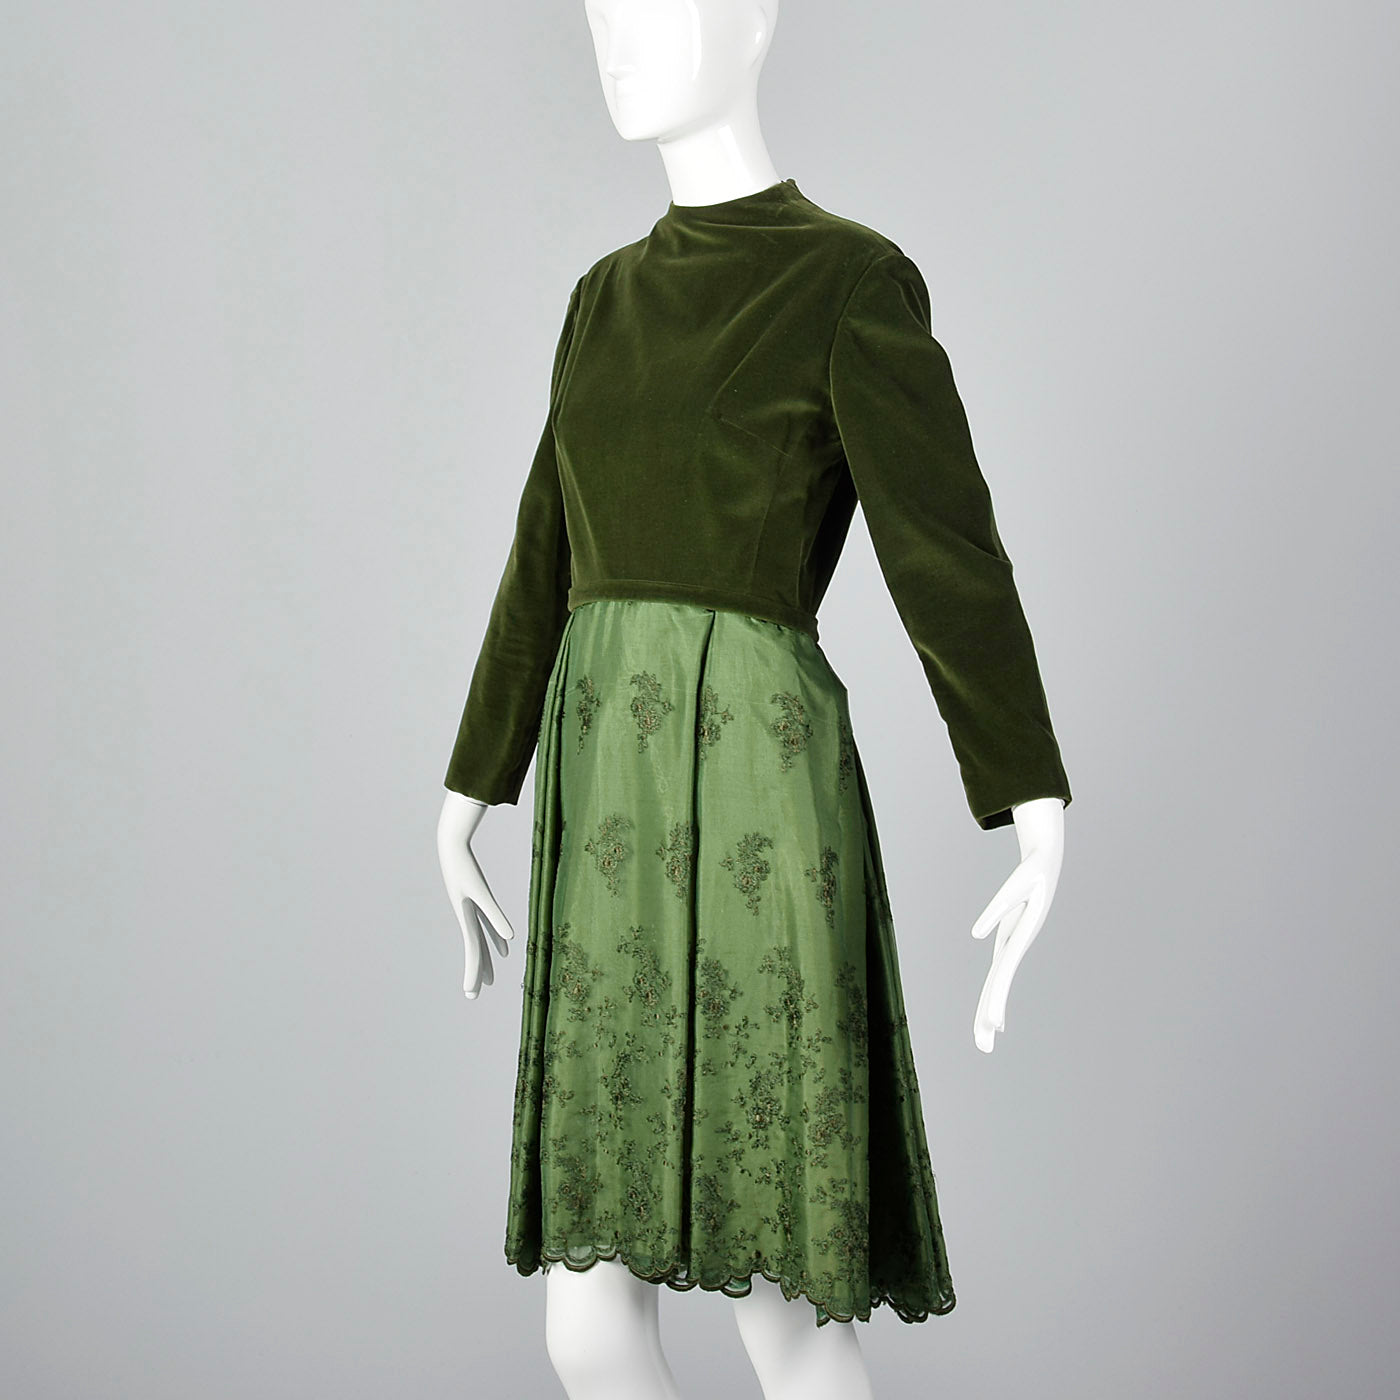 1960s Green Dress with Velvet Bodice